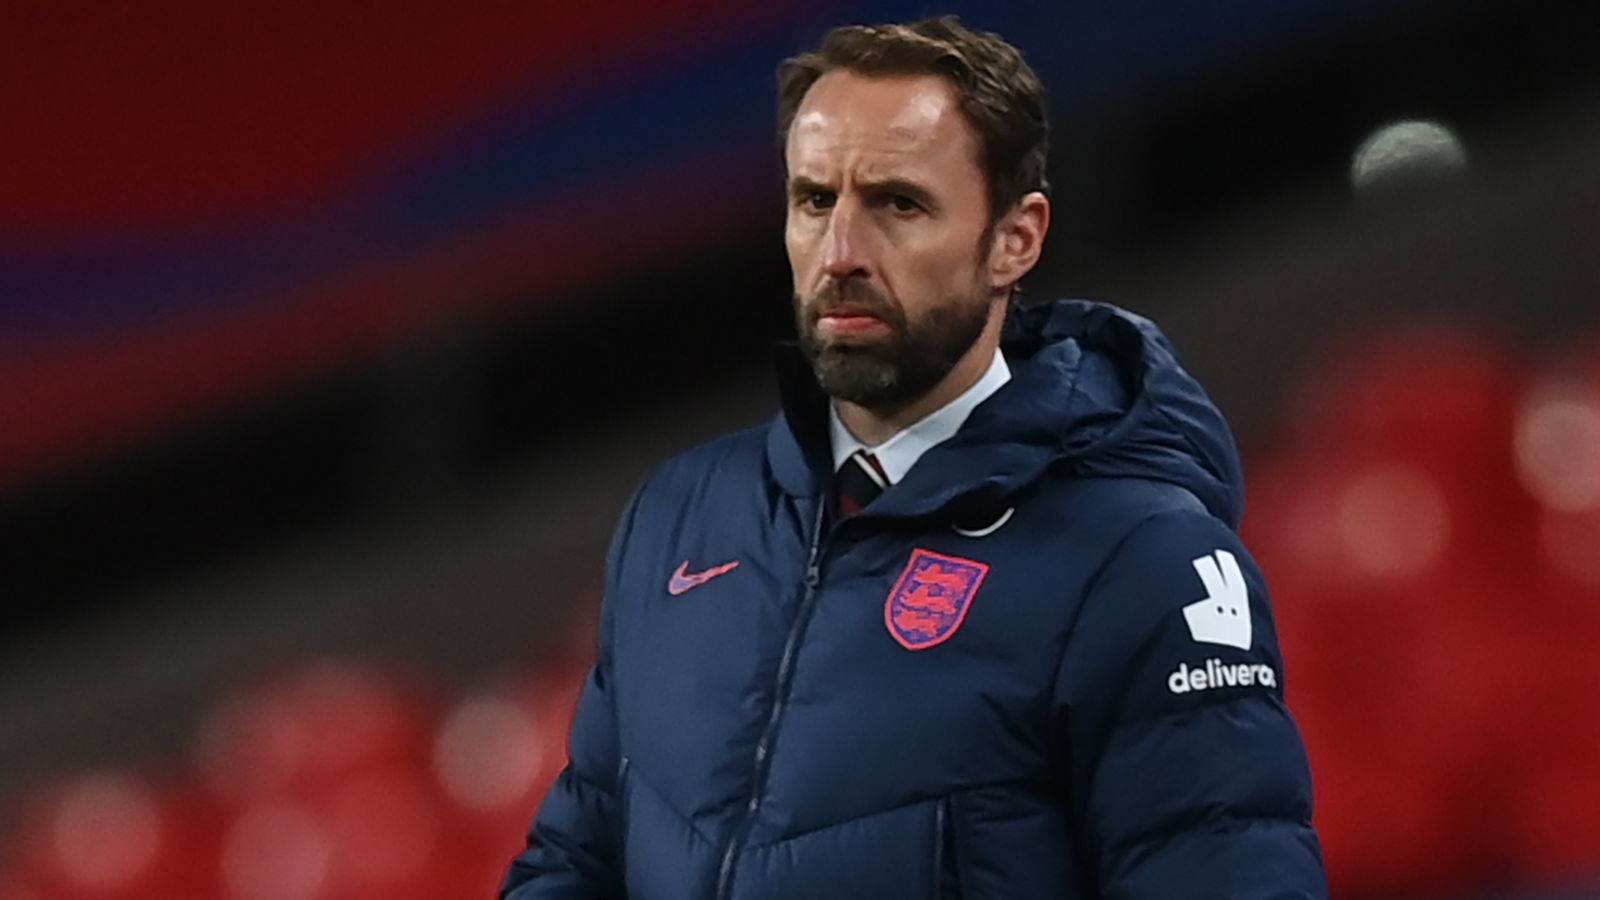 gareth-southgate-england-manager-claims-players-are-pressured-by-clubs-over-callups